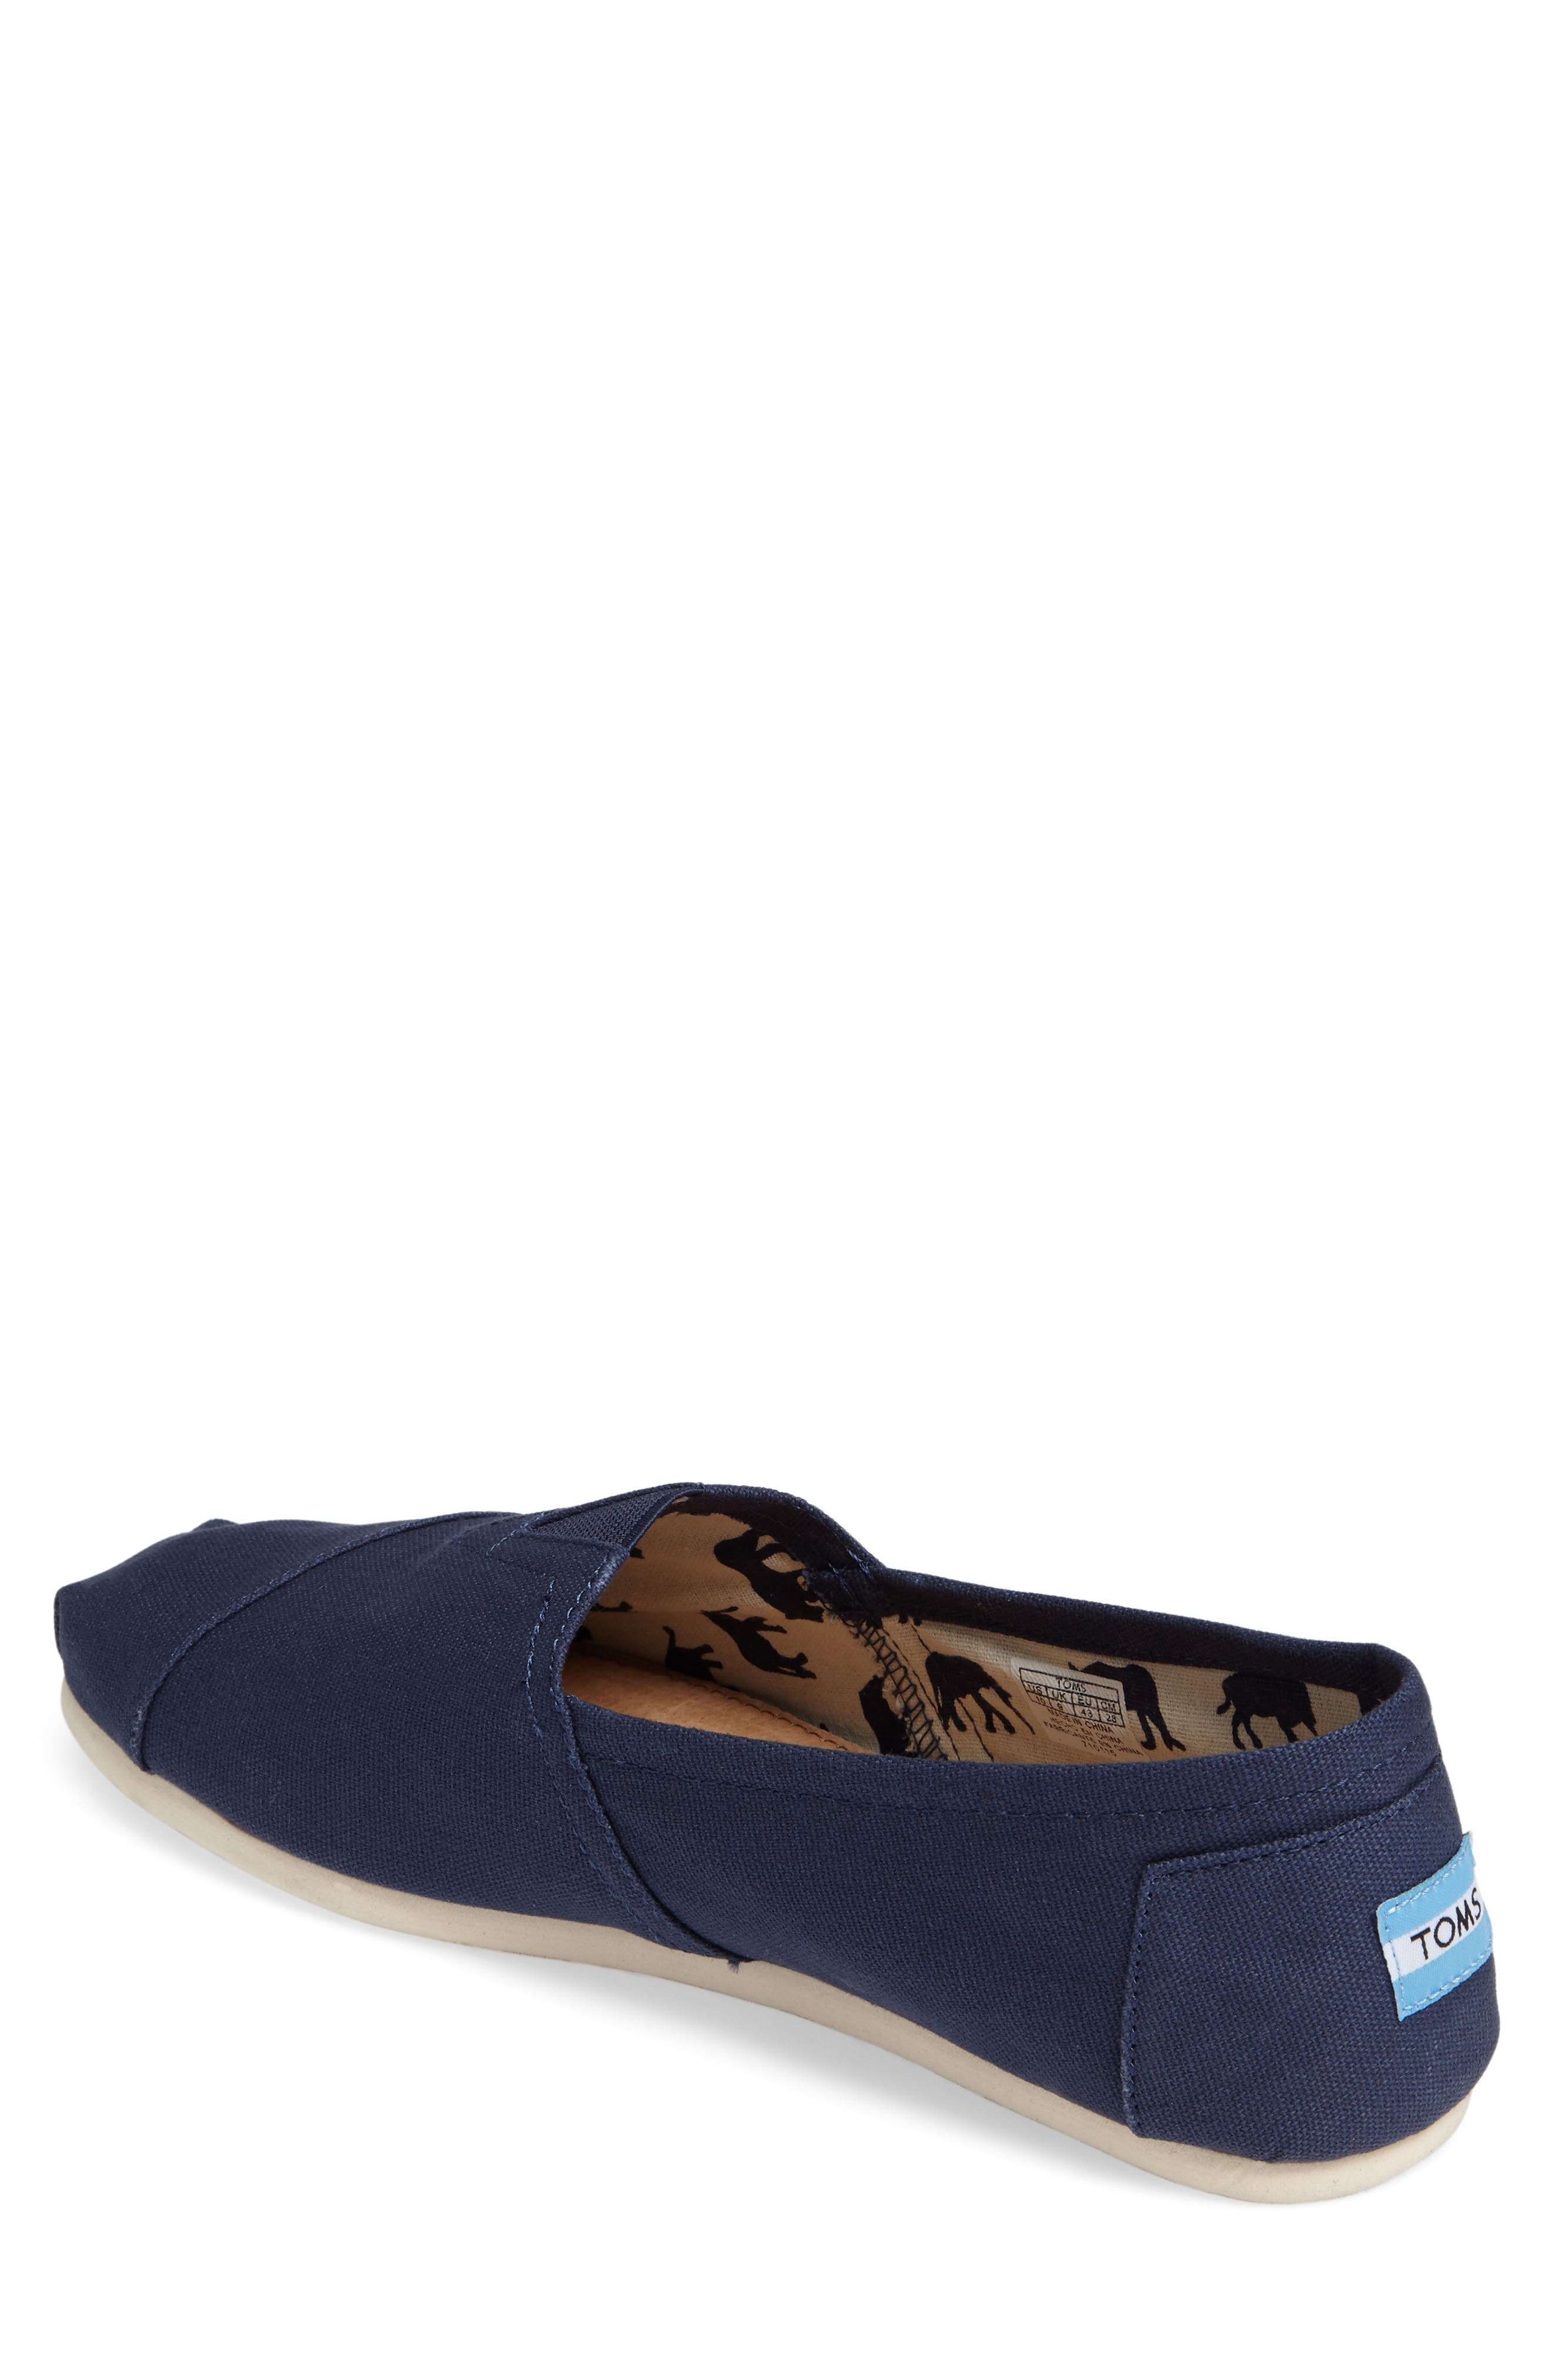 TOMS, 'Classic' Canvas Slip-On, Alternate thumbnail 2, color, NAVY